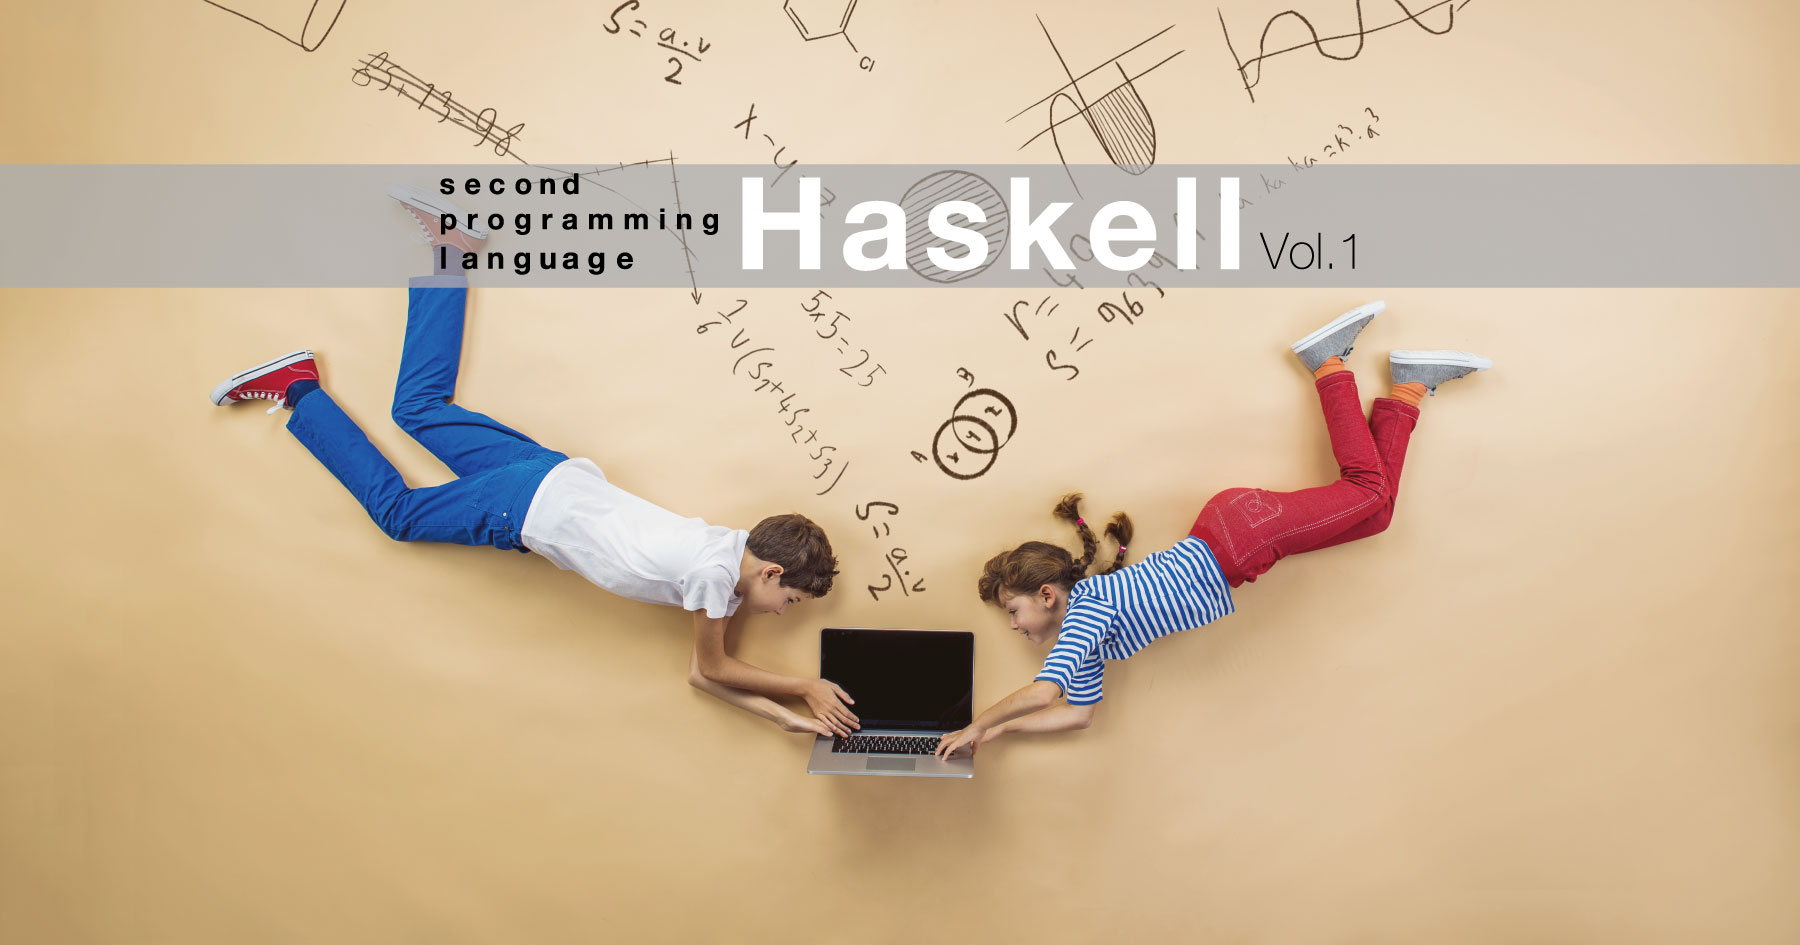 second programming language Haskell